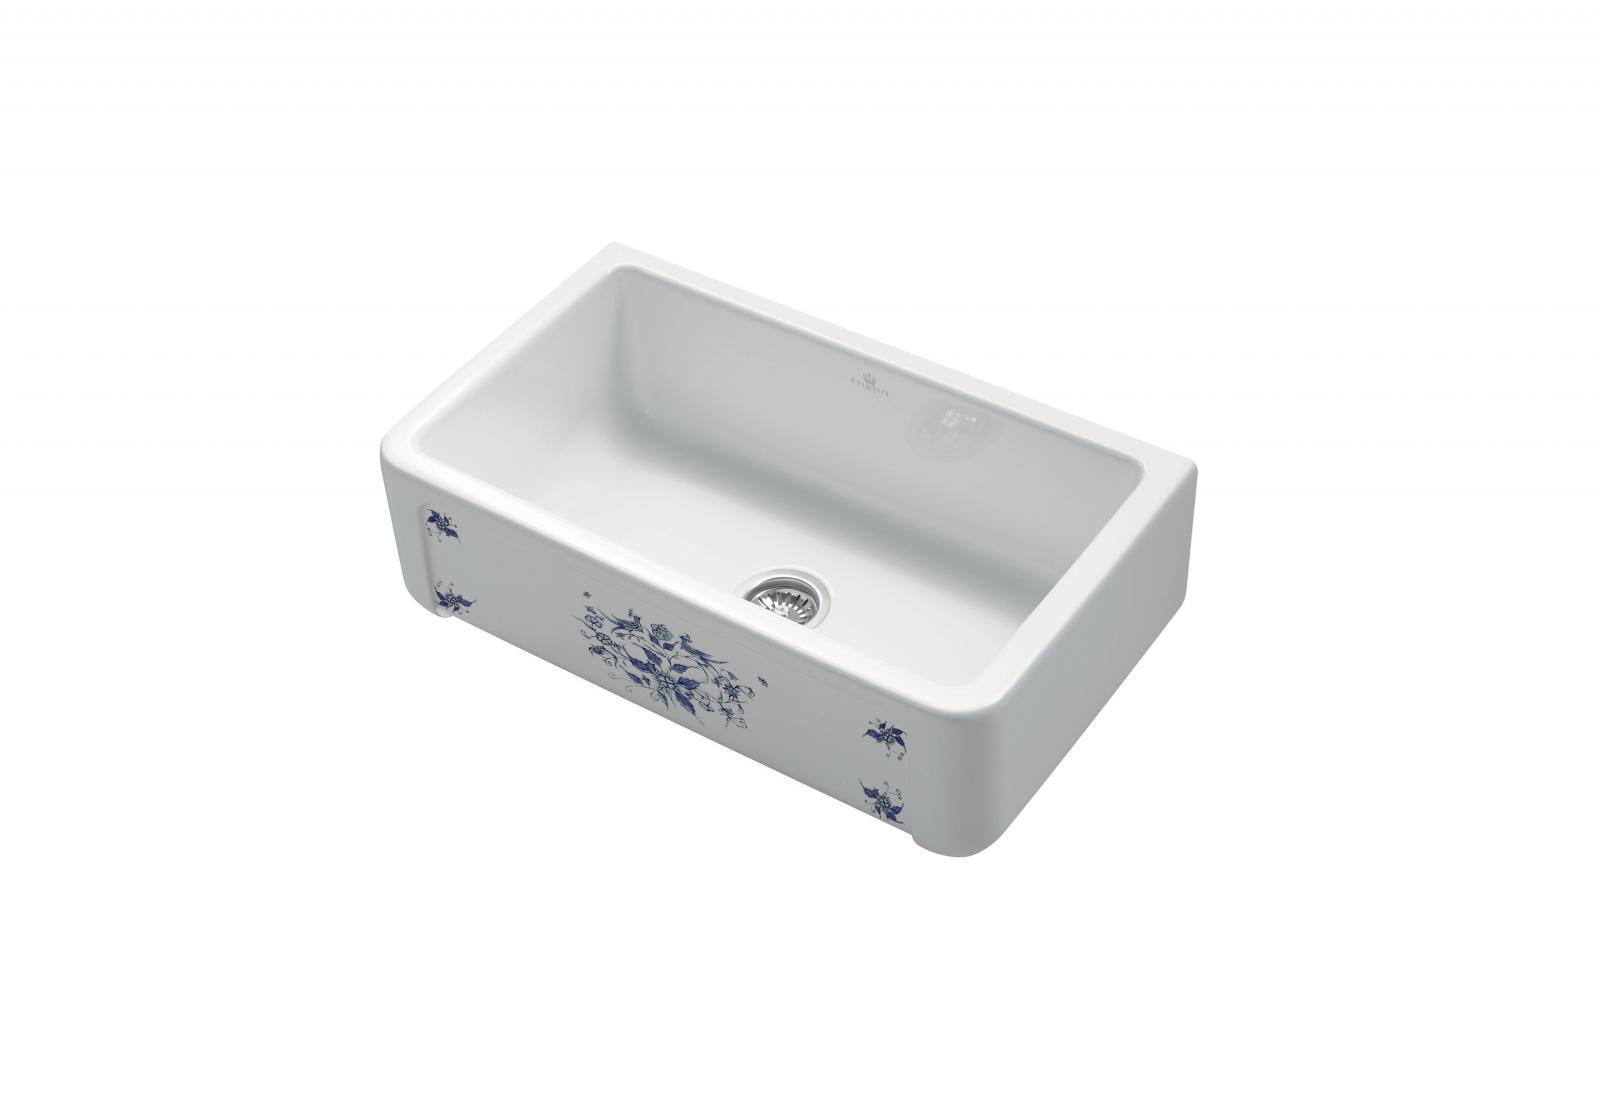 High-quality sink Henri II Le Grand Moustiers - single bowl, ceramic ambience